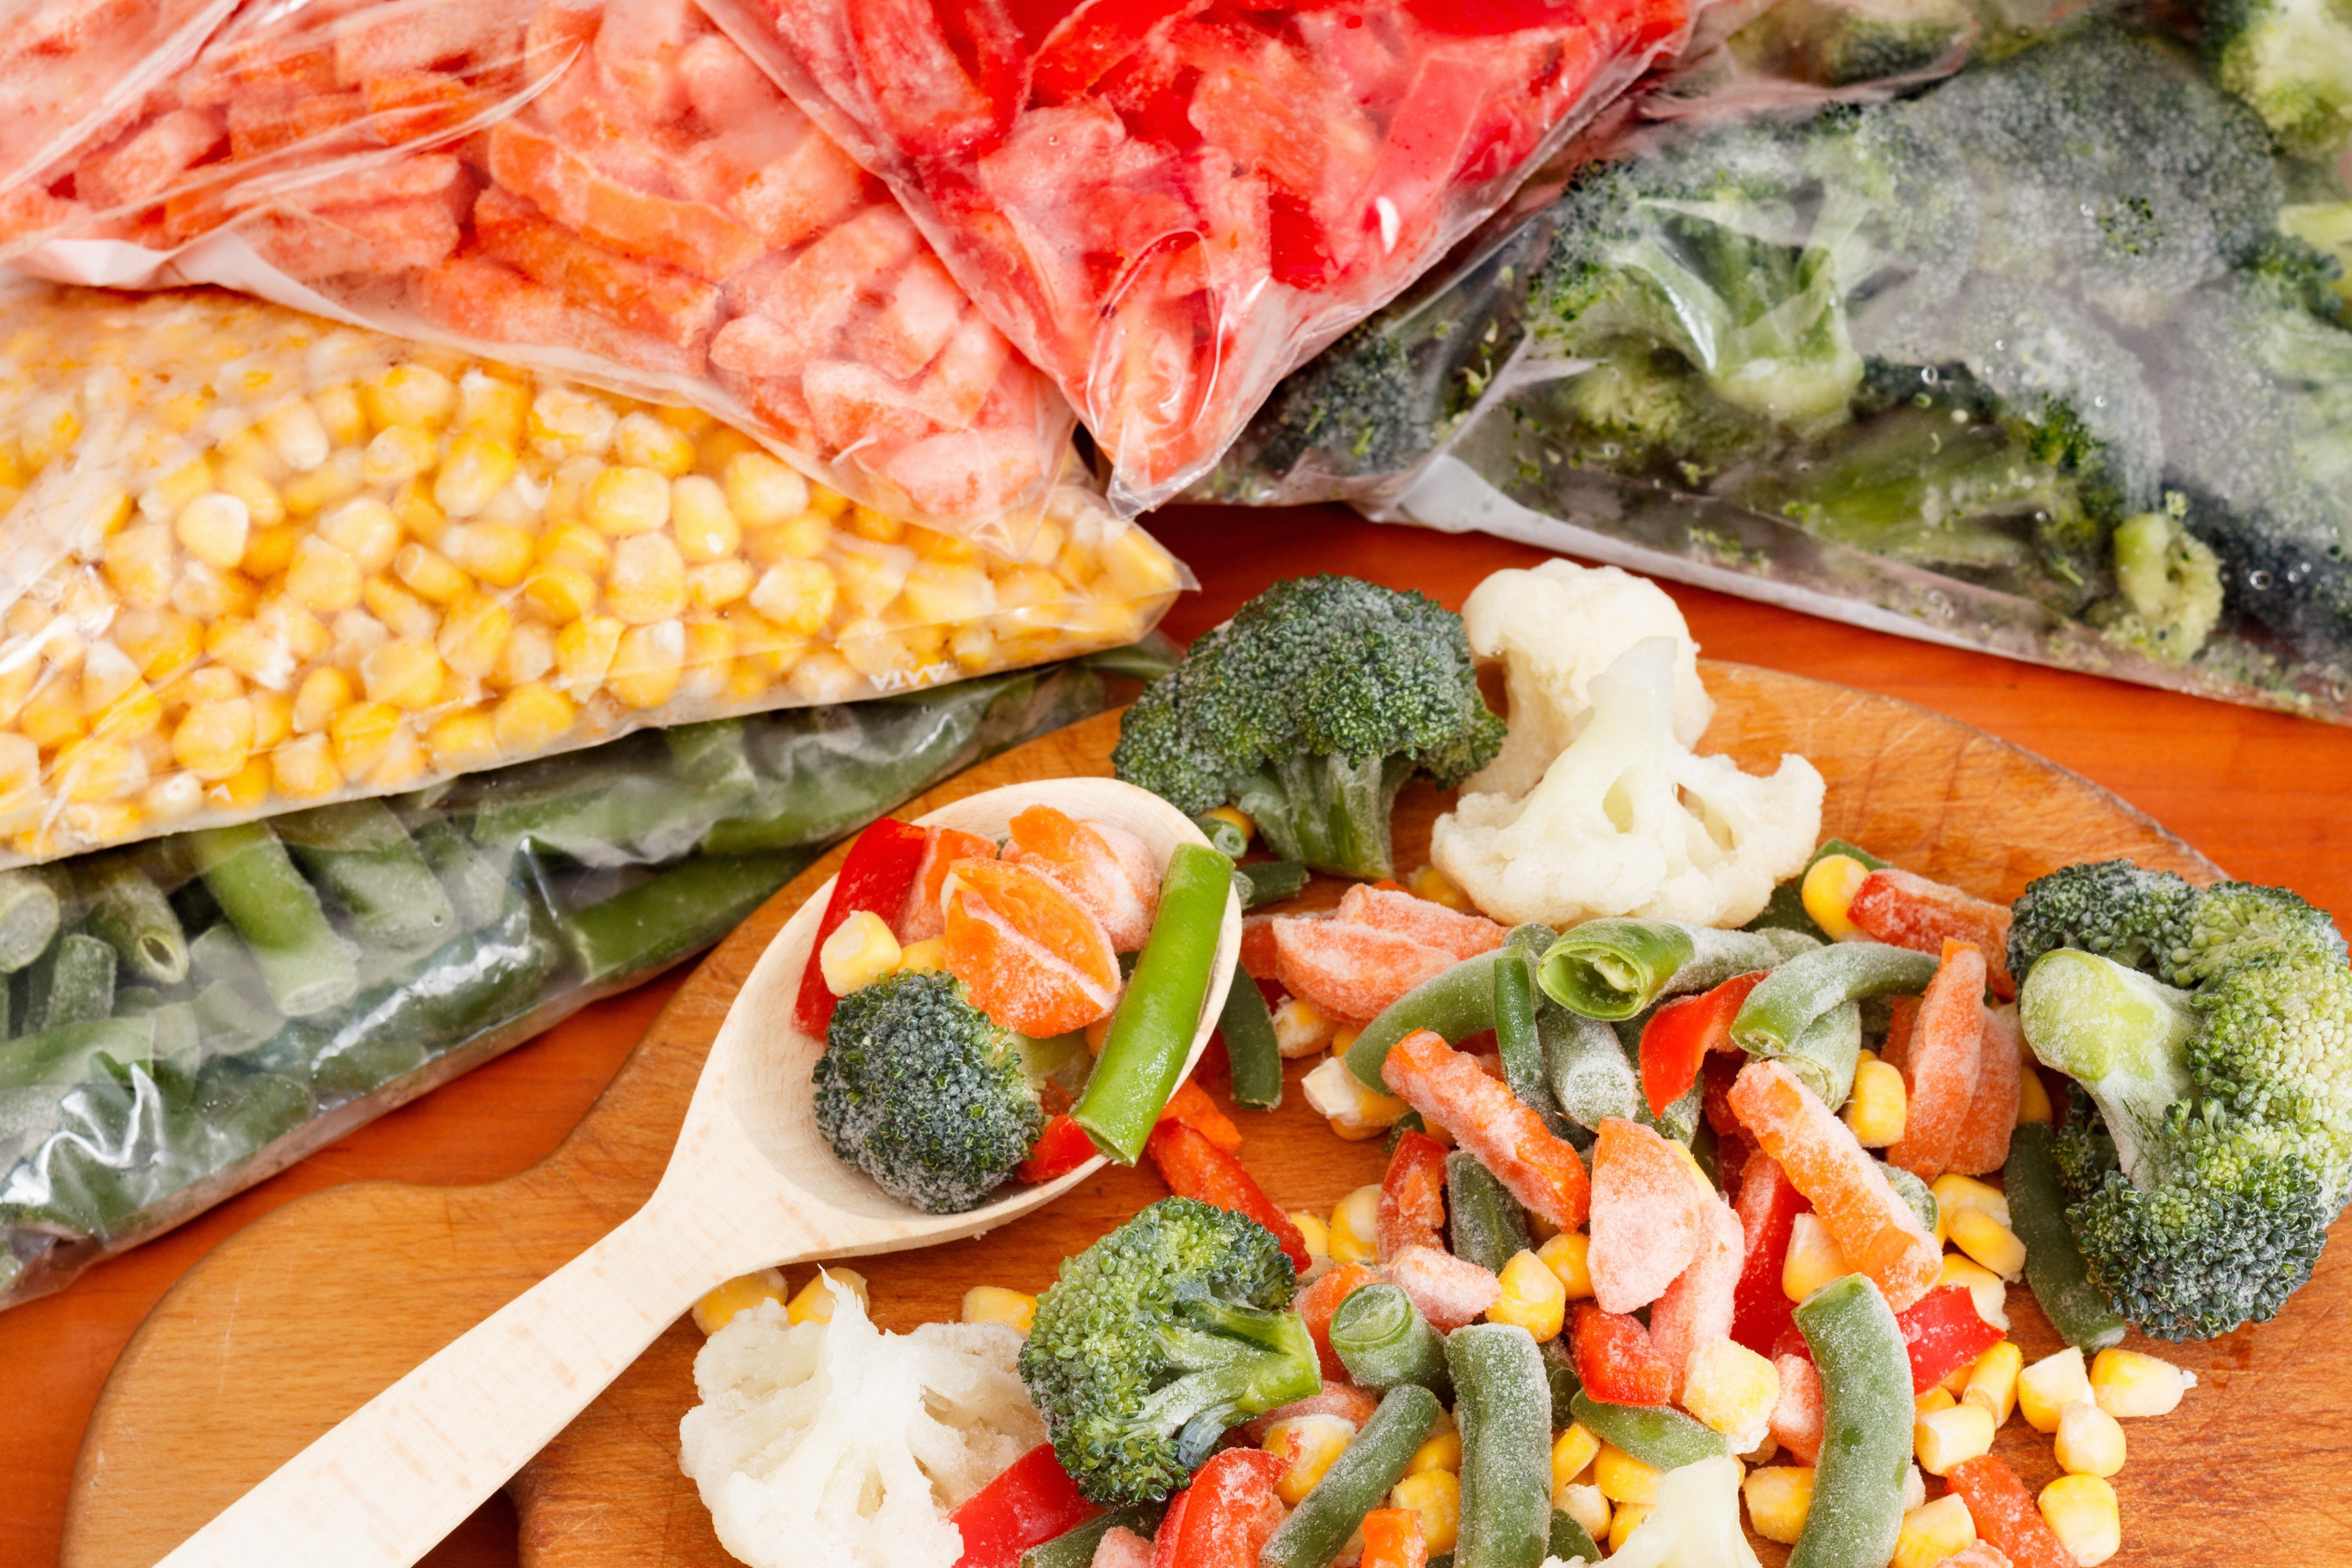 Frozen vegetables on cutting board and plastic bags.   Source: Shutterstock